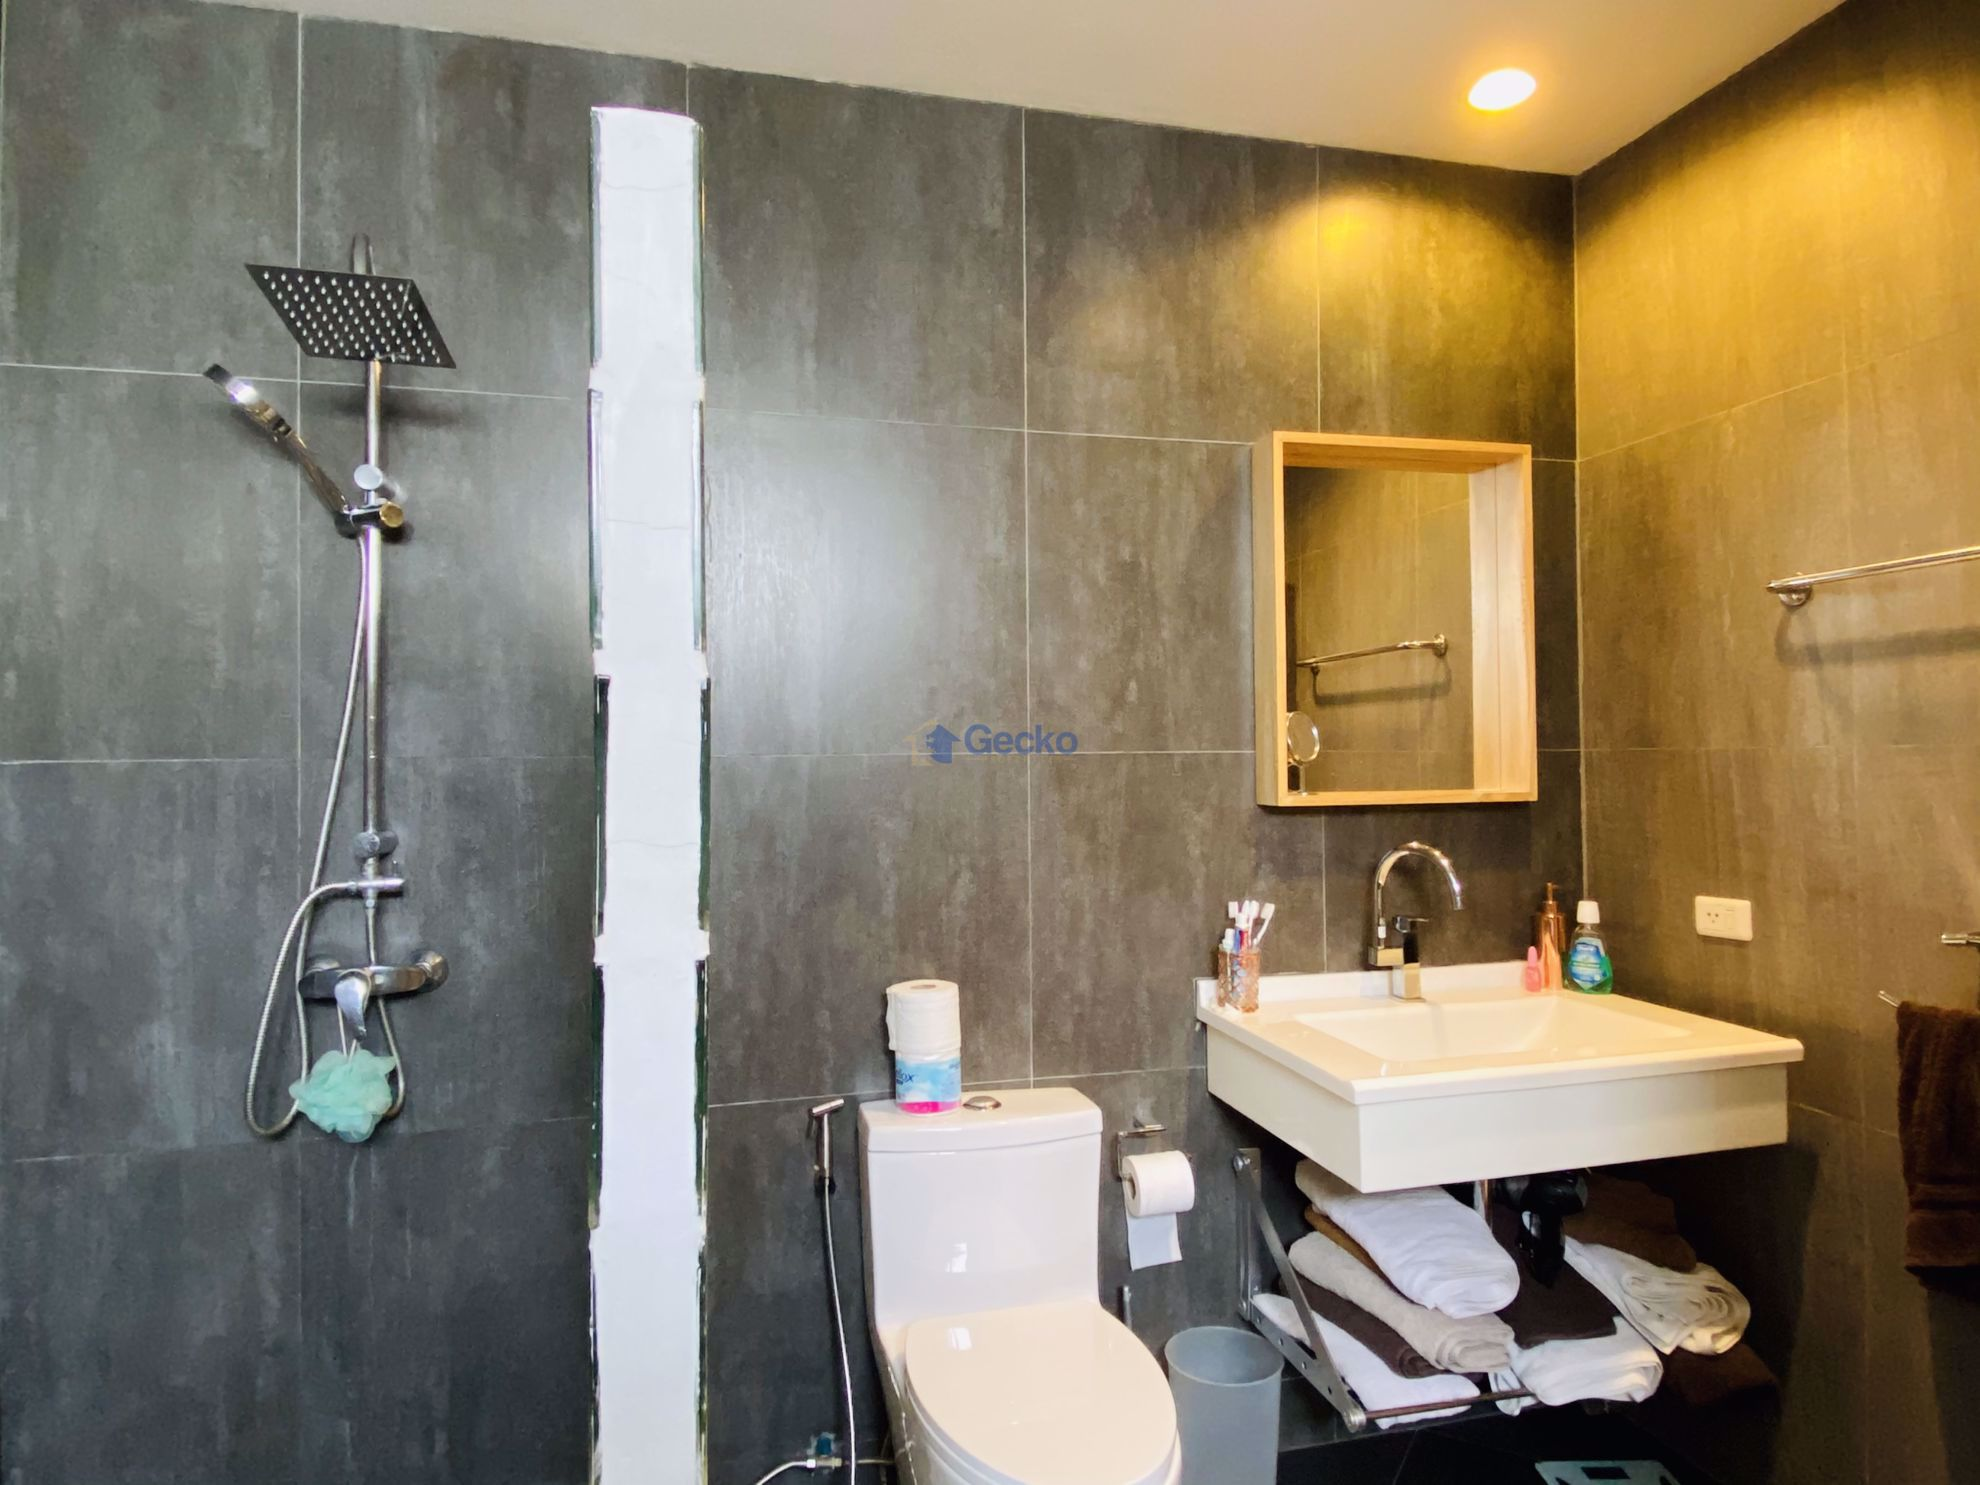 Picture of 3 Bedrooms bed in House in The Meadows in East Pattaya H009094